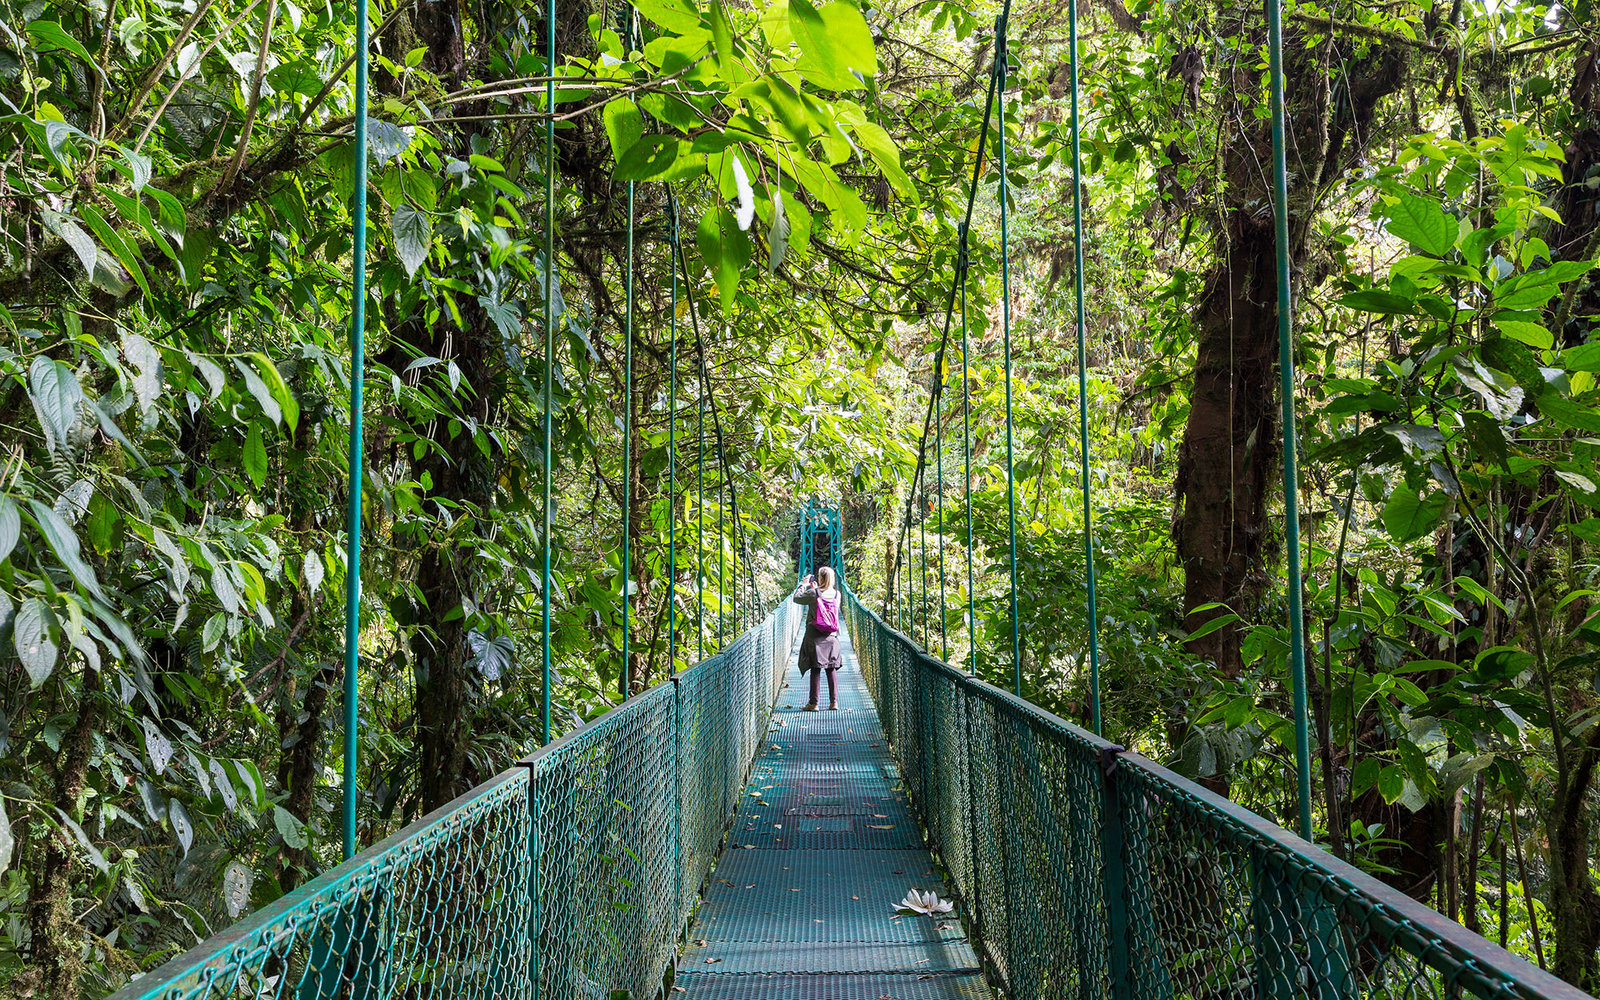 Costa Rica, Puntarenas Province, Santa Elena, canopy tour, suspension bridge